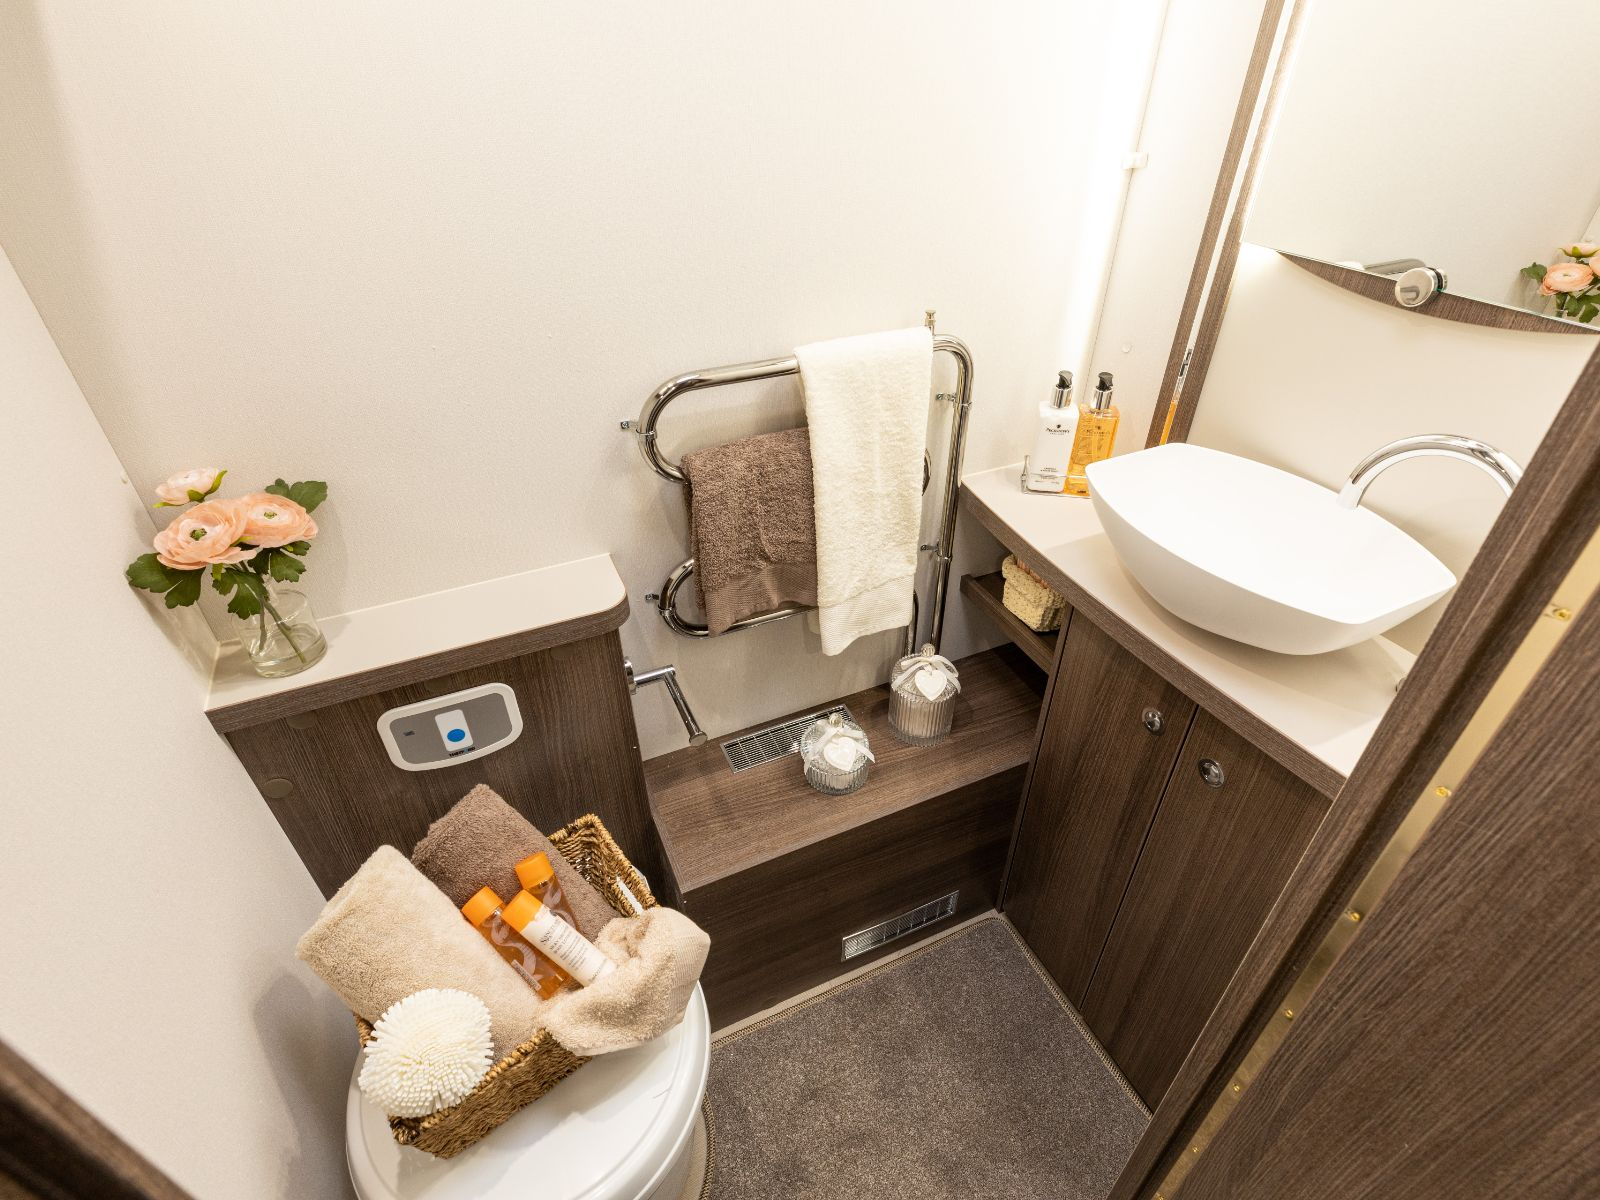 Bathroom layout with sink and toilet with an assortment of toiletries'